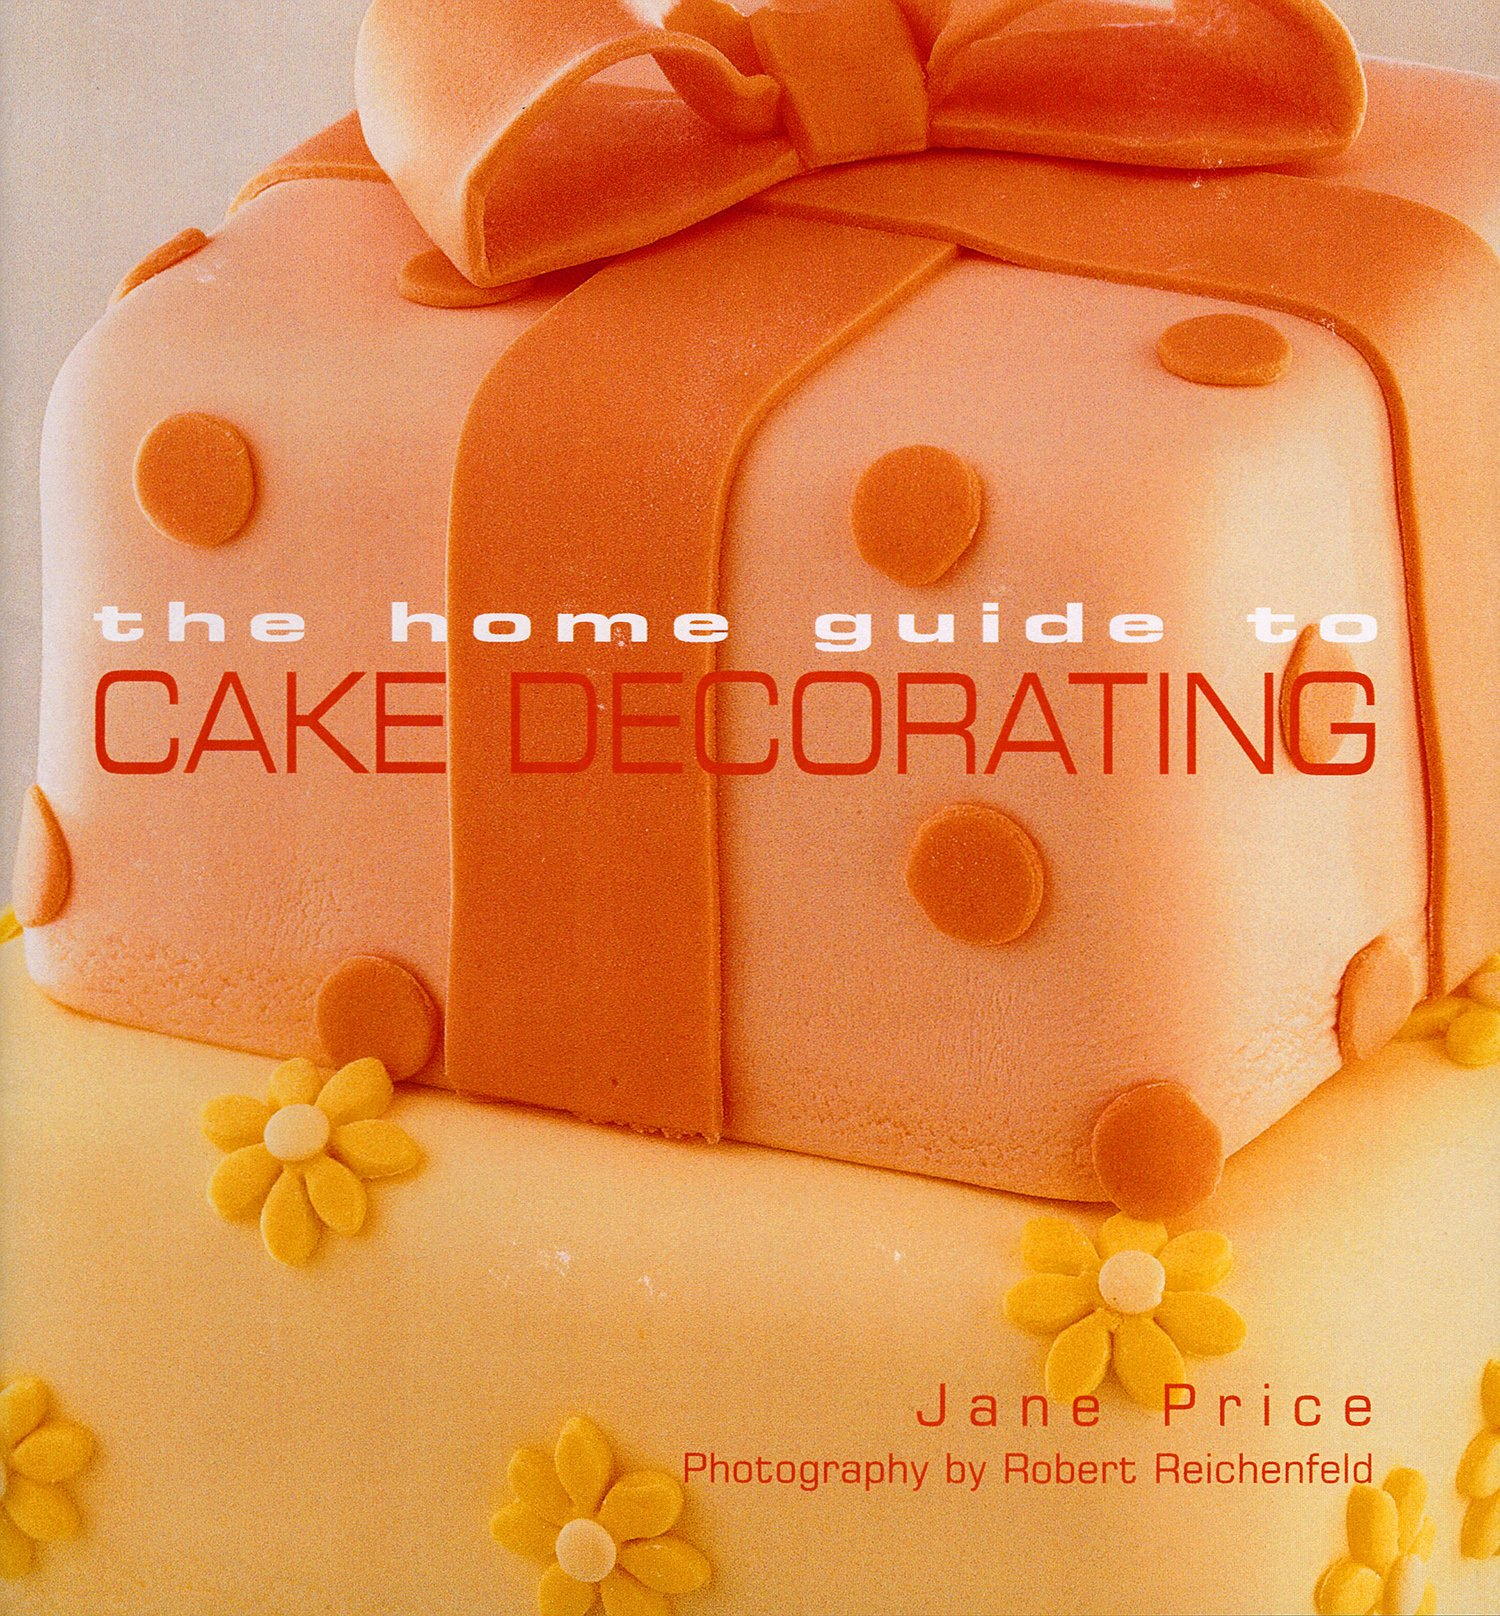 Home Guide To Cake Decorating Jane Price 9781740453677 Amazon